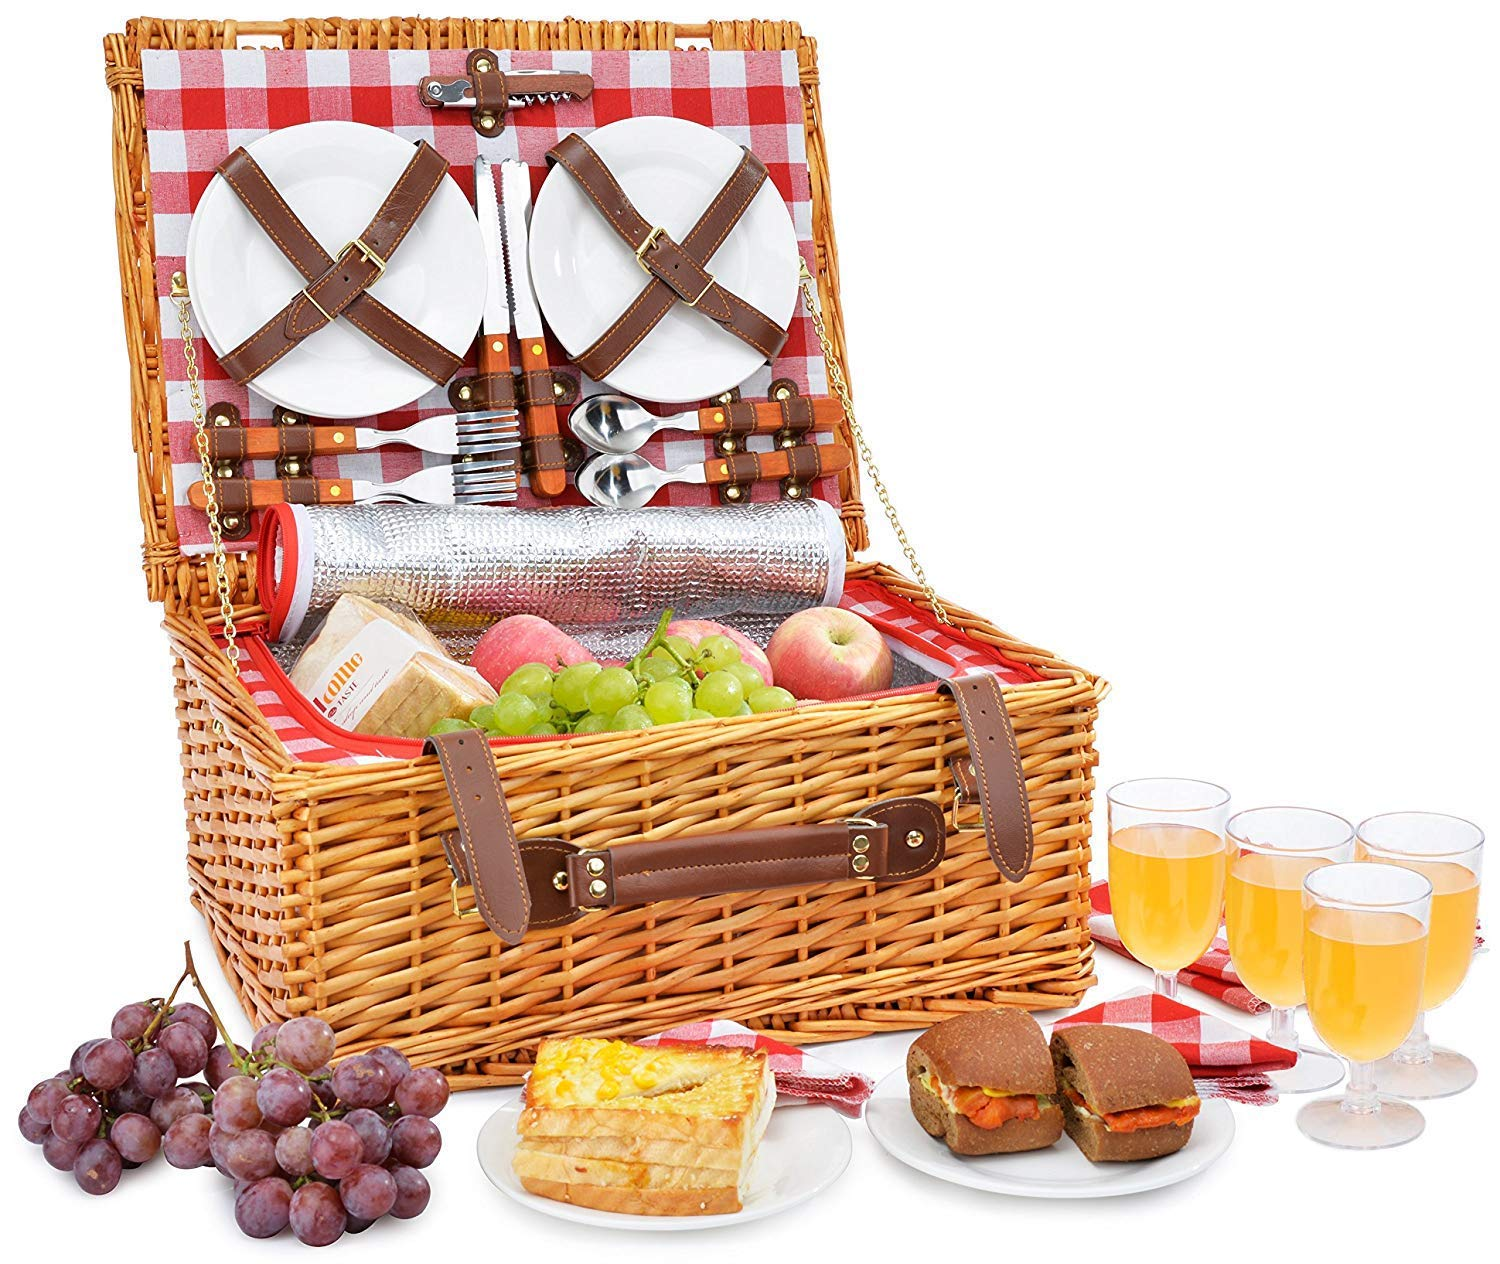 Picnic Basket Set for 4 Person Set | INSULATED Red Picnic Hamper Set with Lid | COMPLETE Picnic Table Set | Large Wicker Basket with Handle | Picnic Supplies | Summer Picnic Kit | Food Storage Baskets